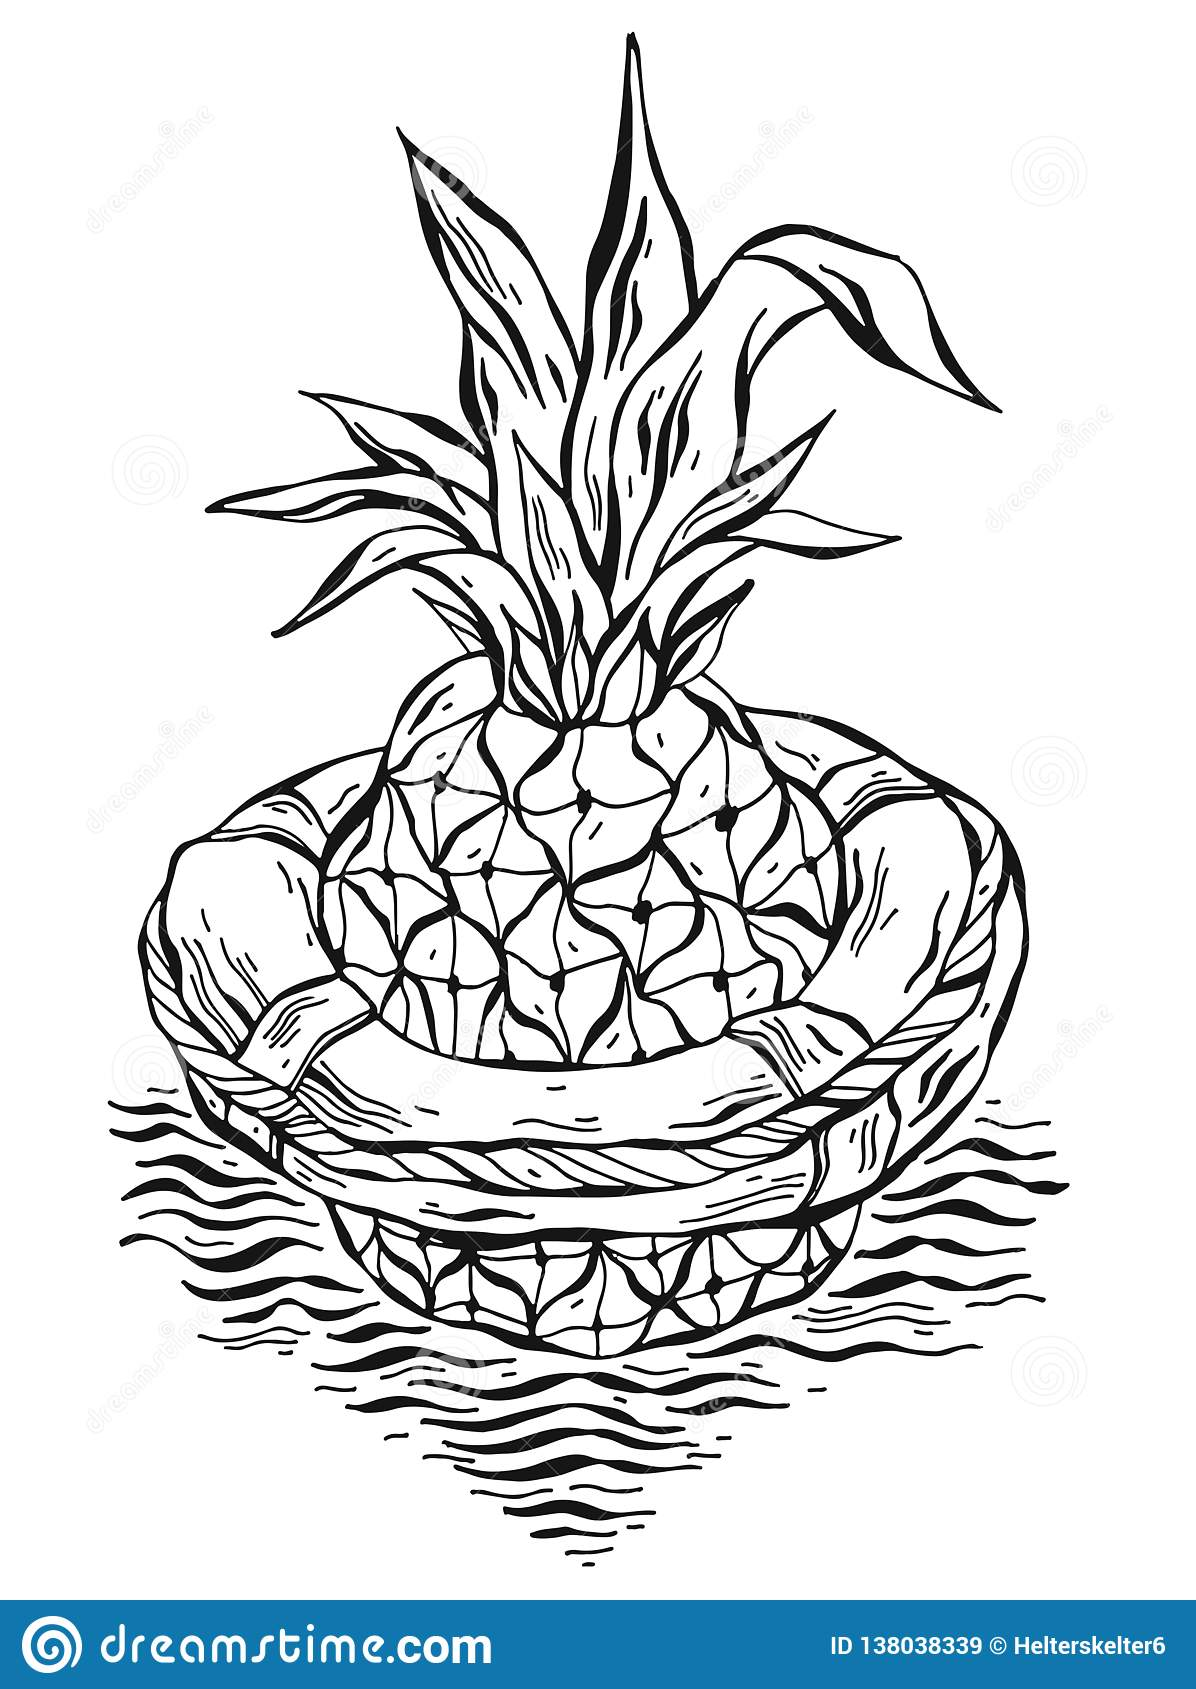 Hand Drawn Vector Graphic Illustration Of Pineapple Floating In